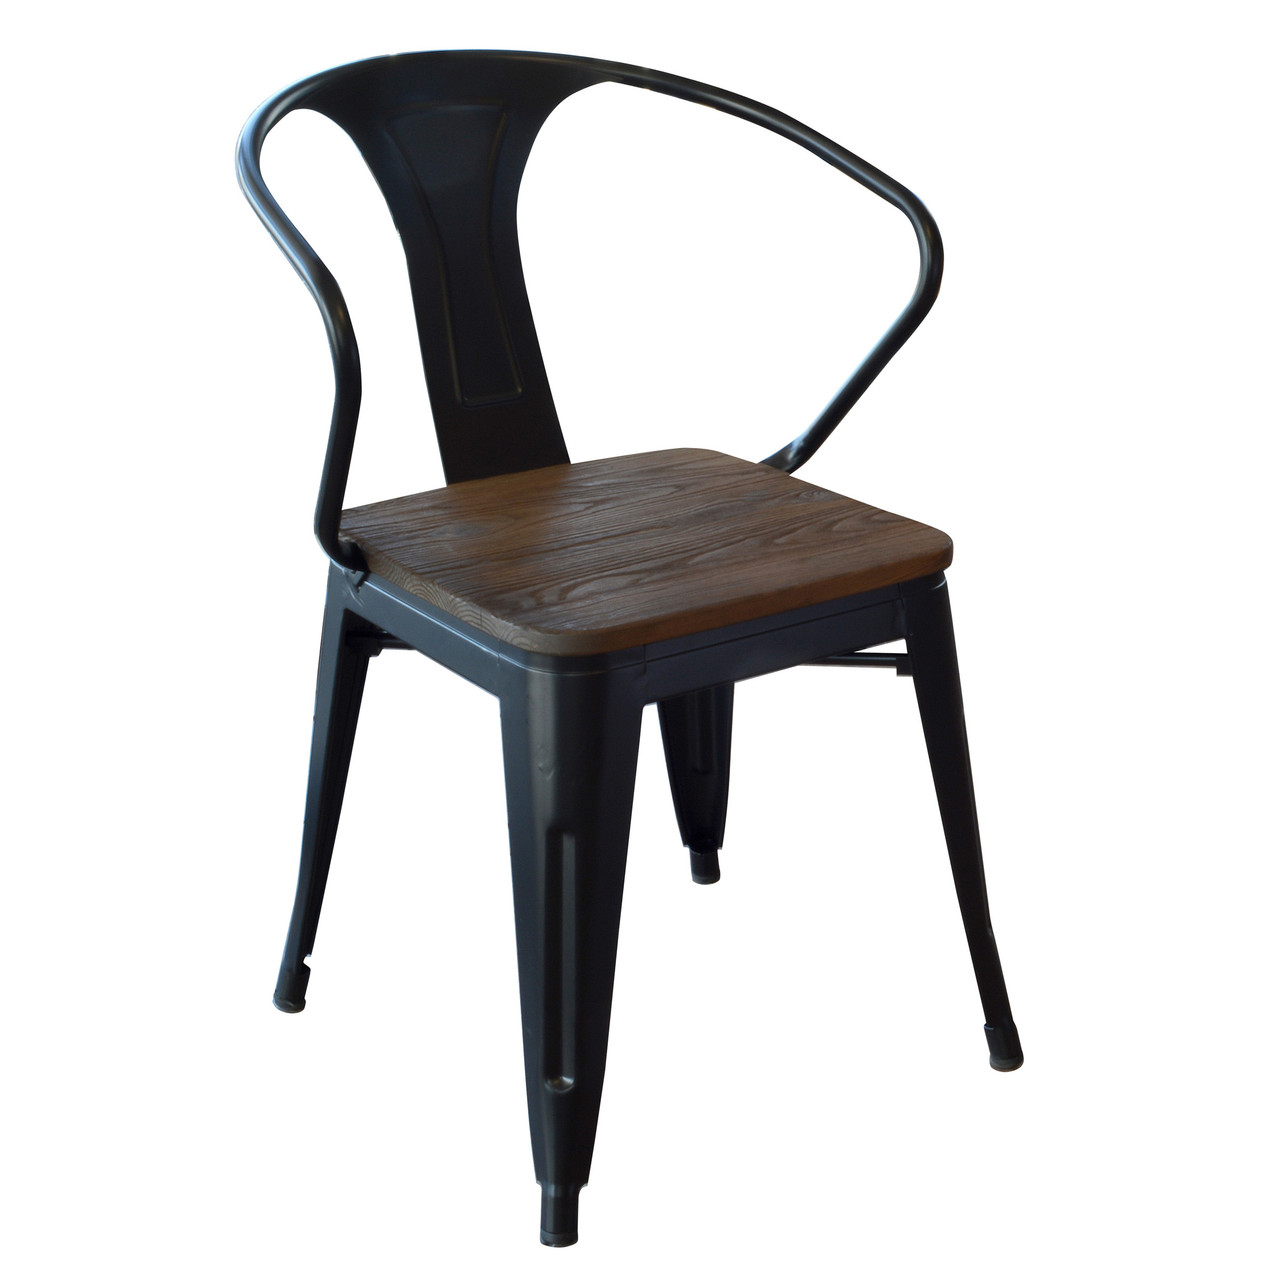 Amerihome Dchairbwt Loft Black Metal Dining Chair With Wood Seat 4 Piece